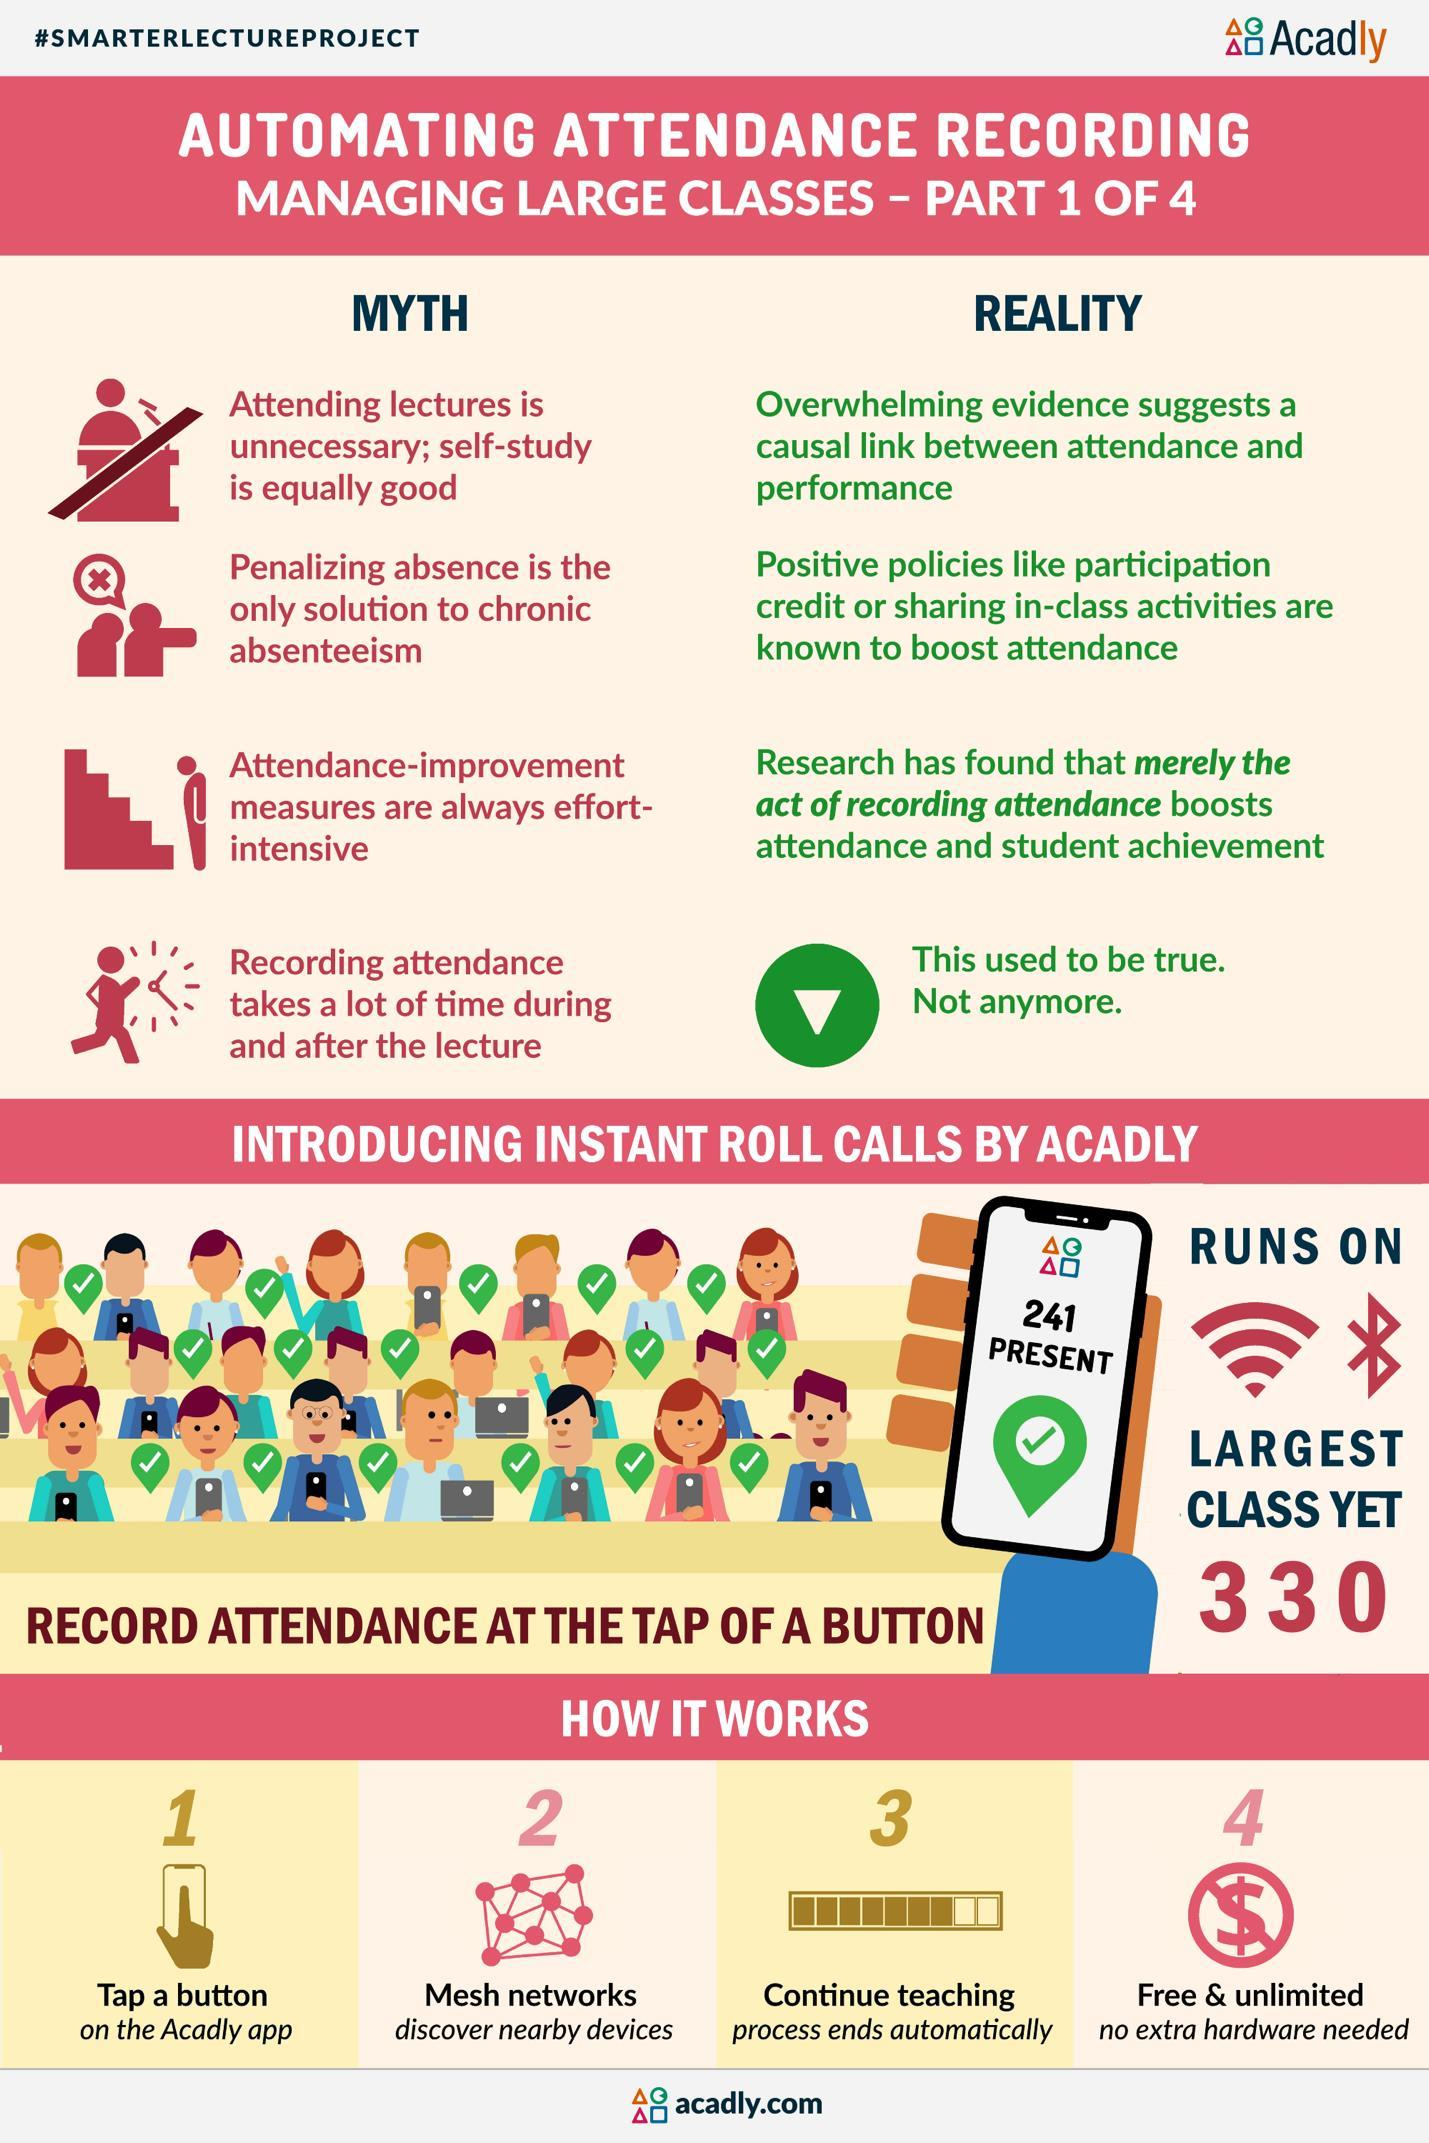 attendance-torecord-or-not-to-record